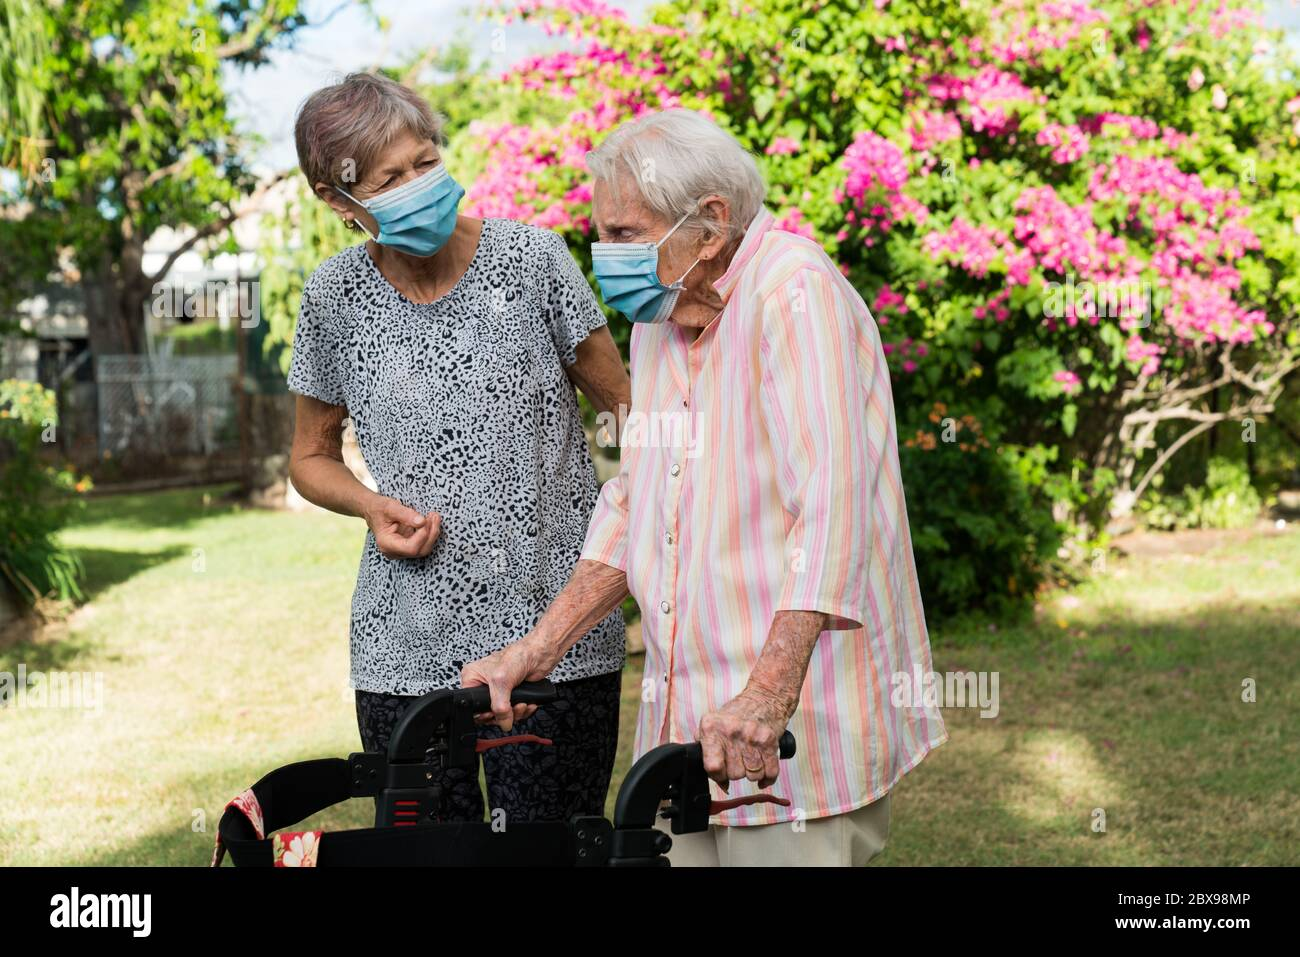 carer-helping-elderly-lady-to-get-exercise-in-garden-wearing-mask-2BX98MP.jpg